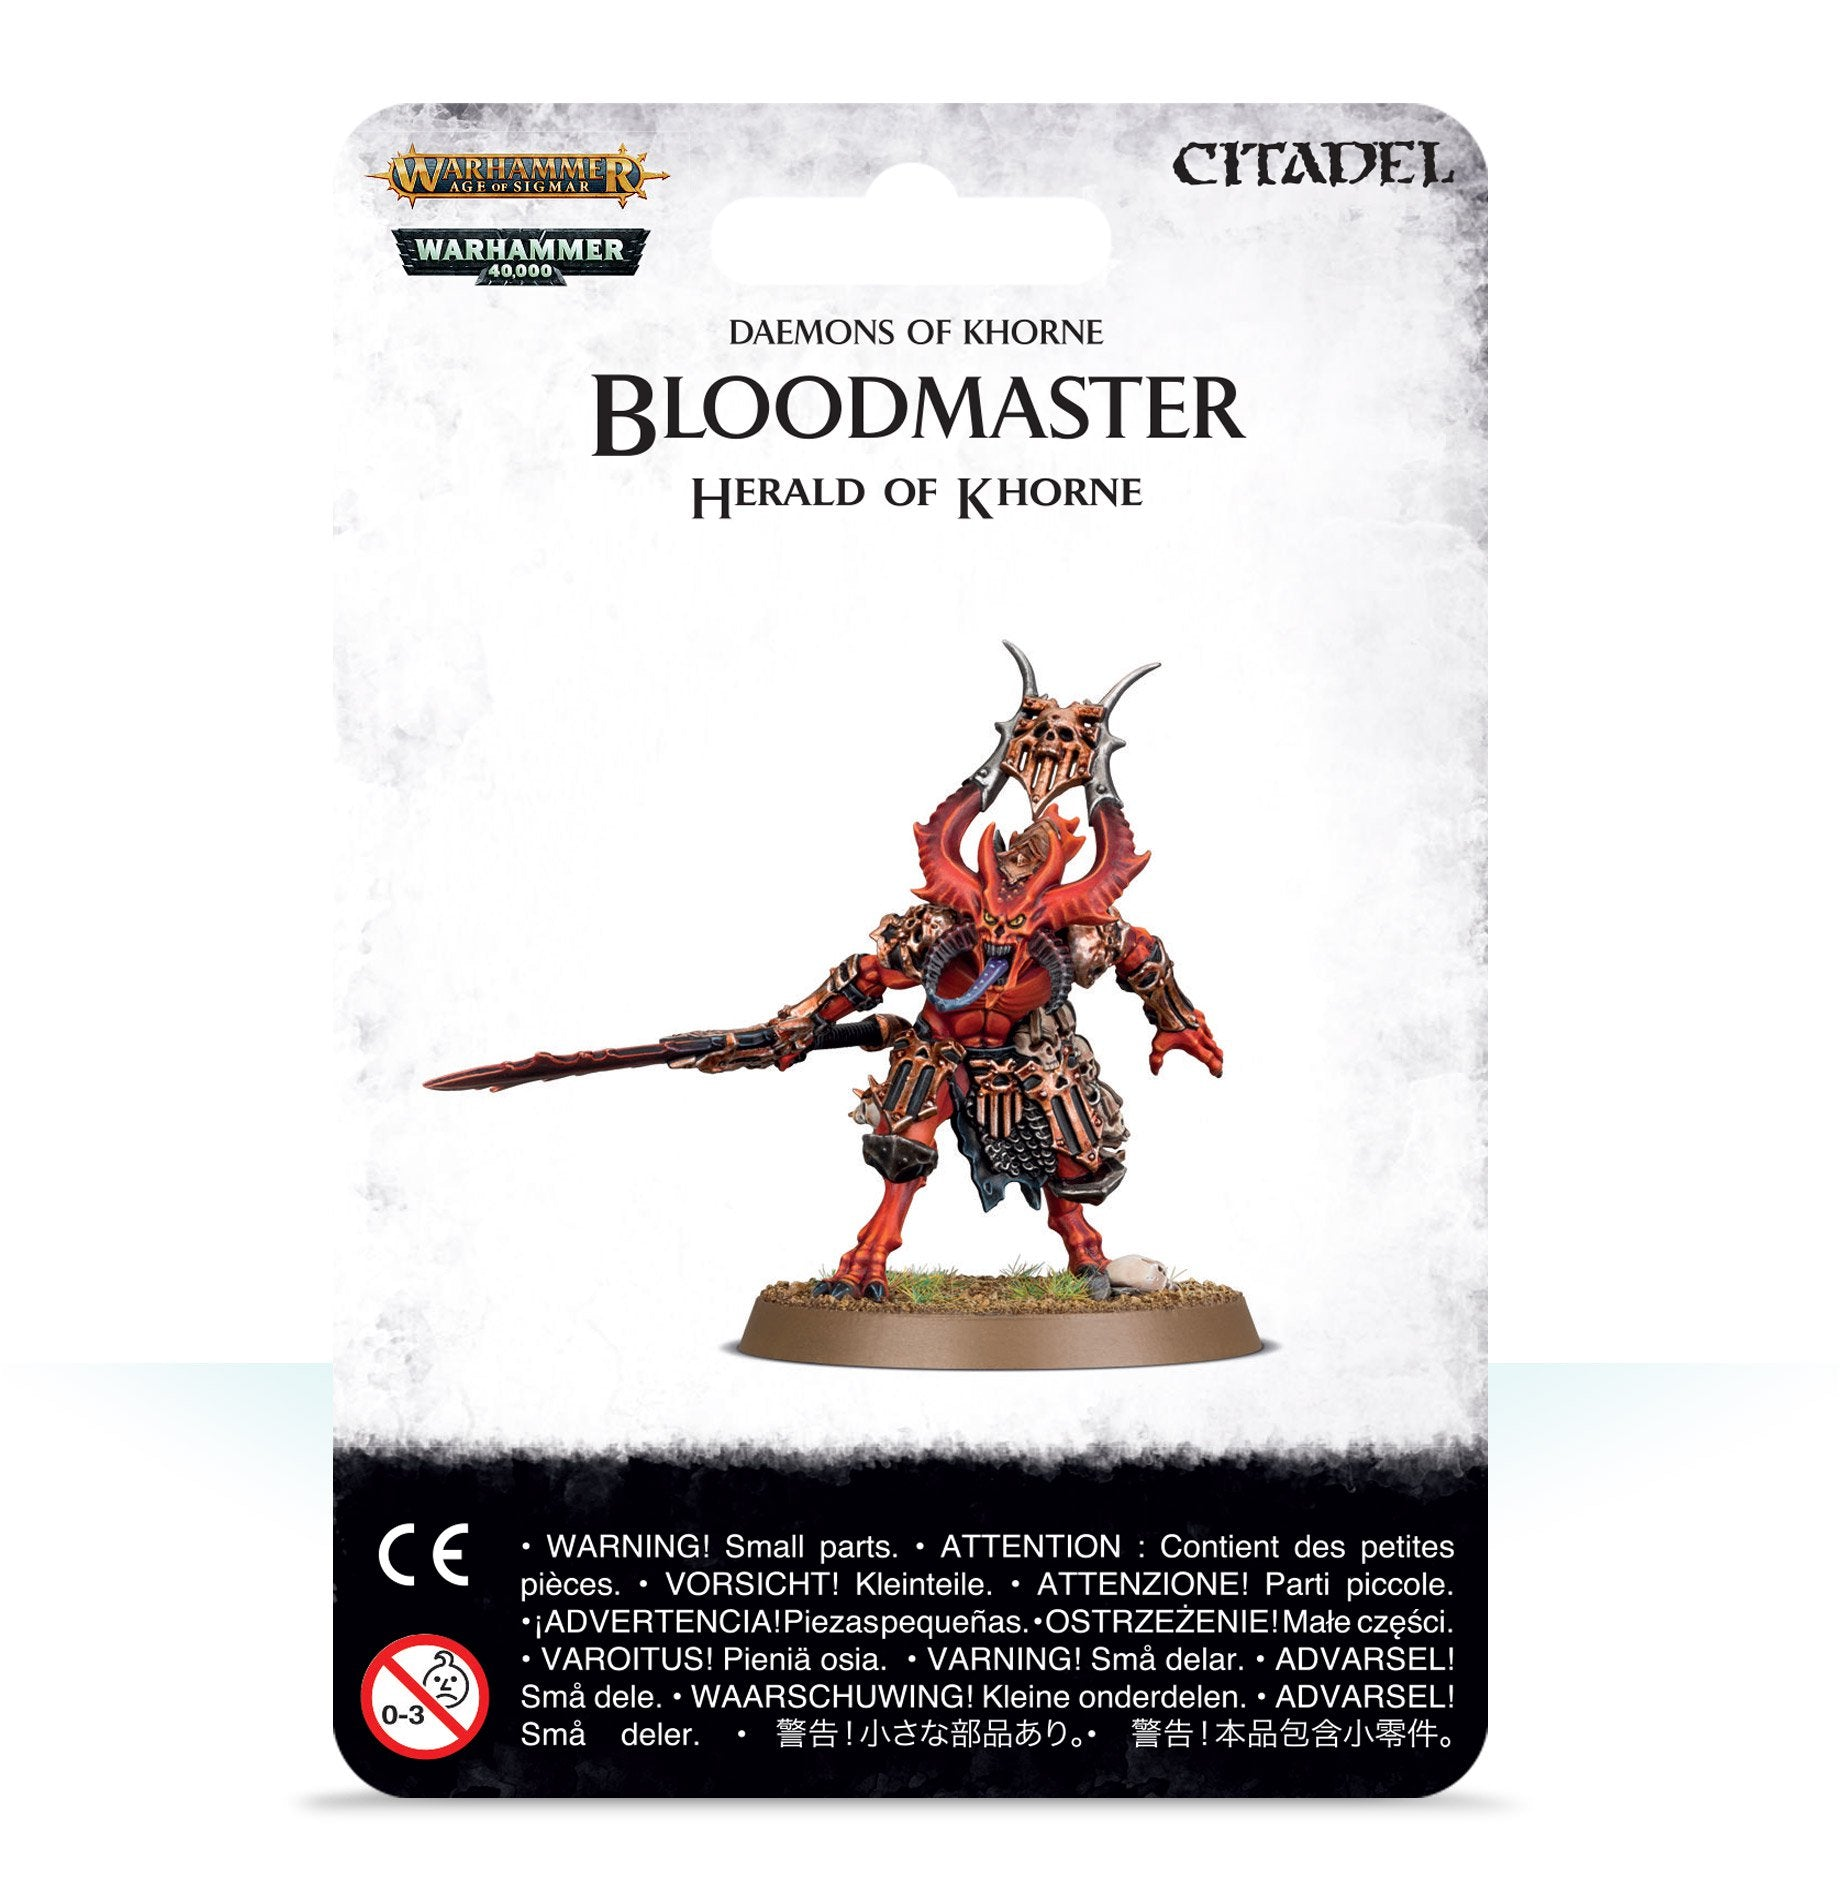 Bloodmaster, Herald of Khorne | Mythicos